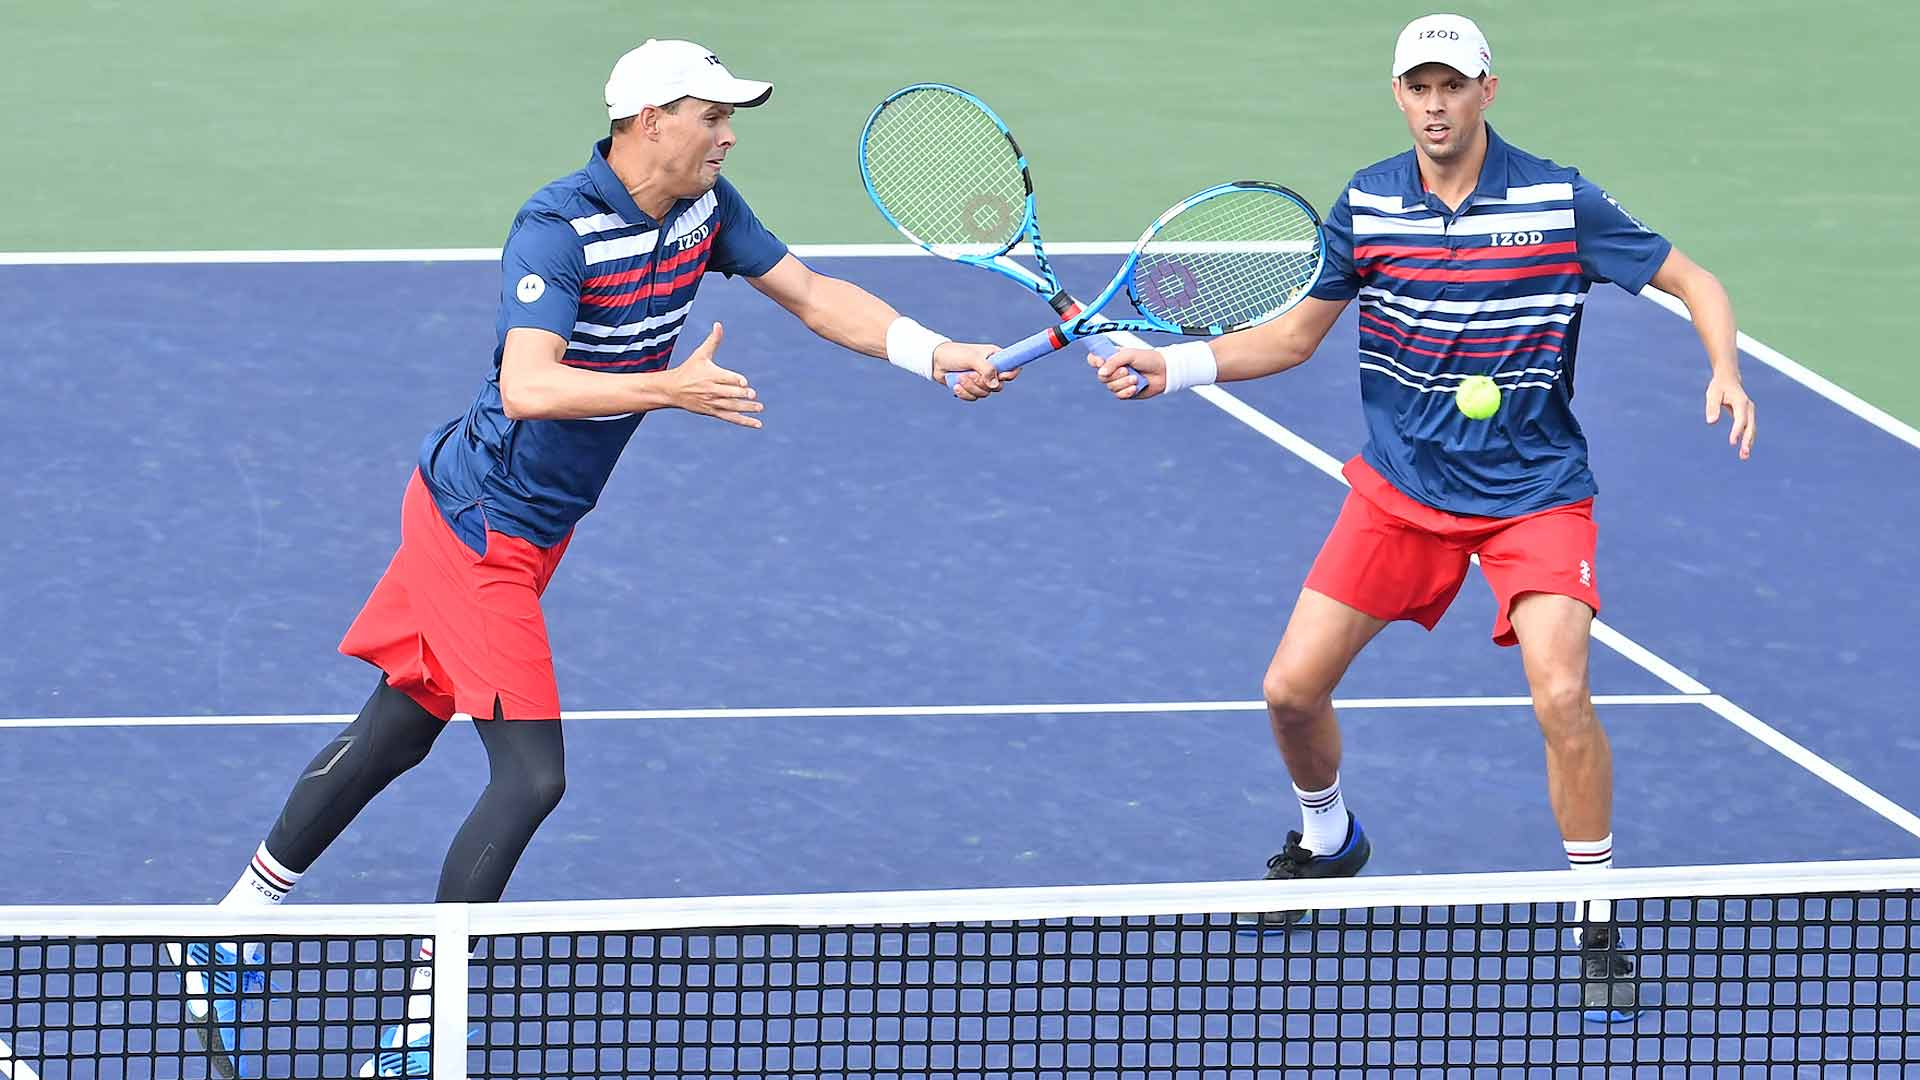 <a href='https://www.atptour.com/en/players/bob-bryan/b588/overview'>Bob Bryan</a> and <a href='https://www.atptour.com/en/players/mike-bryan/b589/overview'>Mike Bryan</a> look to win a point at net at the 2019 <a href='https://www.atptour.com/en/tournaments/indian-wells/404/overview'>BNP Paribas Open</a>.